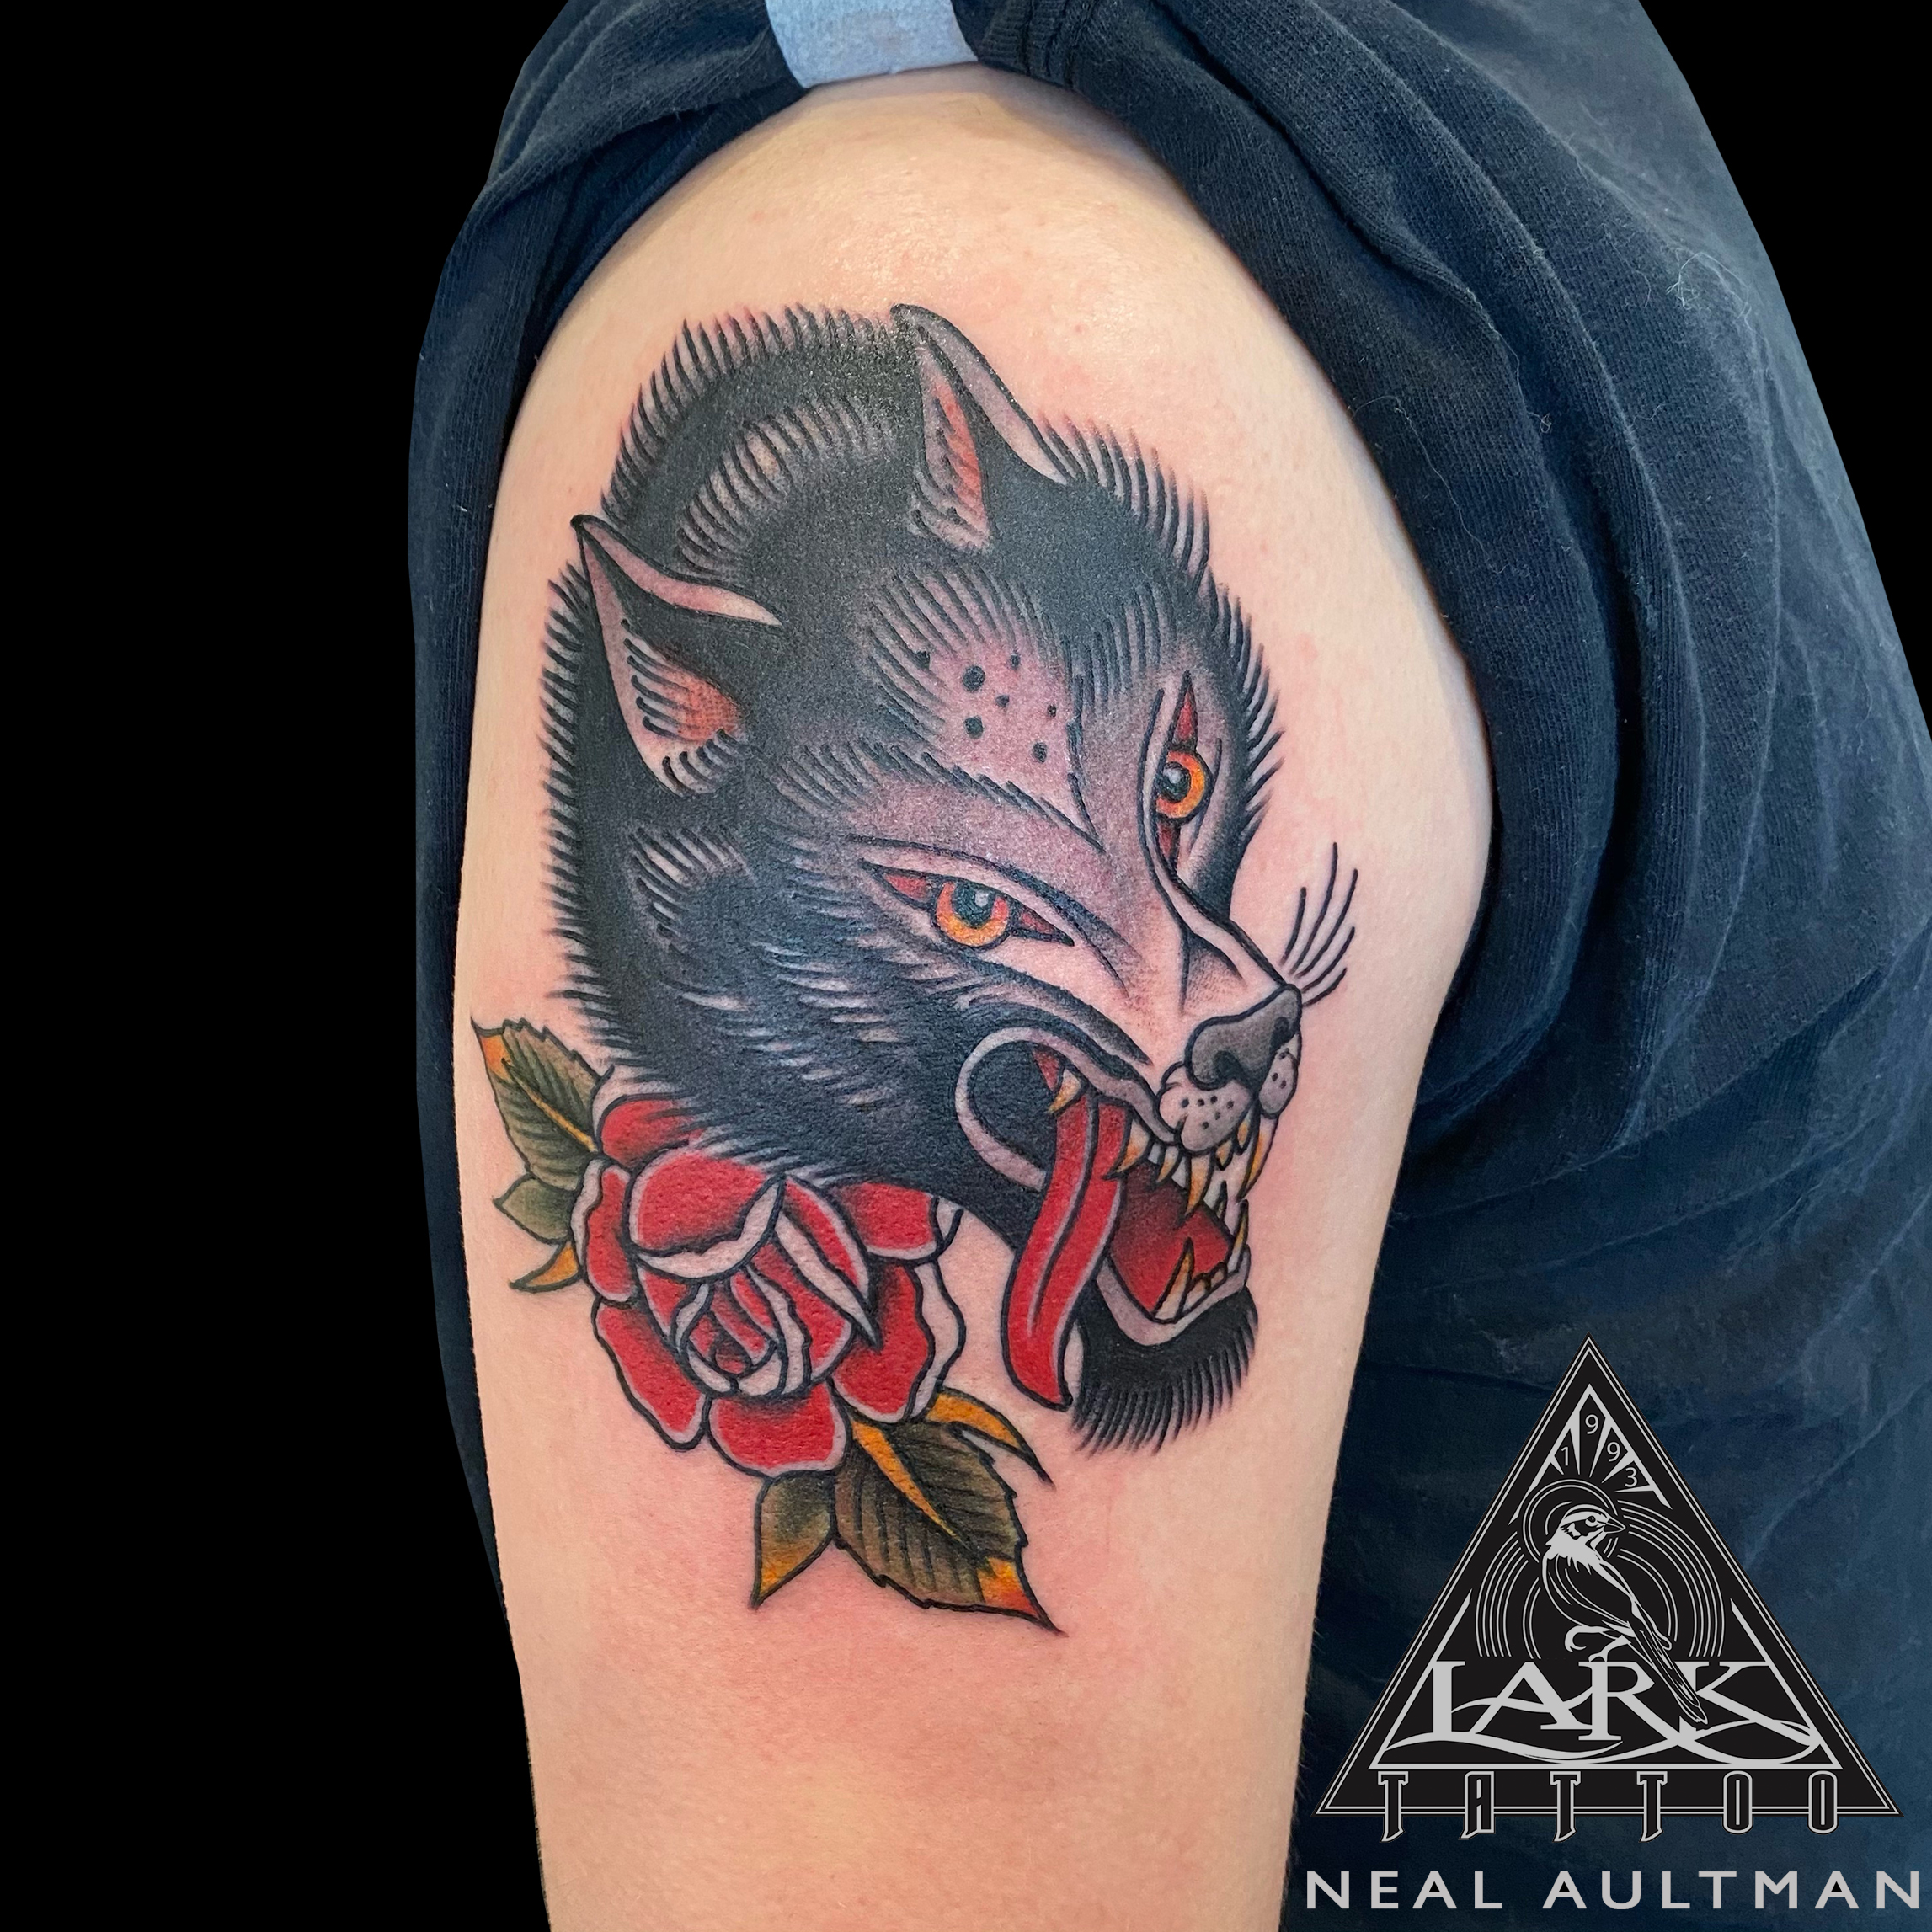 #LarkTattoo #NealAultman #NealAultmanLarkTattoo #Tattoo #Tattoos #Wolf #WolfTattoo #WolfHead #WolfHeadTattoo #Rose #RoseTattoo #Traditional #TraditionalTattoo #ColorTattoo #TattooArtist #Tattoist #Tattooer #LongIslandTattooArtist #LongIslandTattooer #LongIslandTattoo #TattooOfTheDay #Tat #Tats #Tatts #Tatted #Inked #Ink #TattooInk #AmazingInk #AmazingTattoo #BodyArt #LarkTattooWestbury #Westbury #LongIsland #NY #NewYork #USA #Art #Tattedup #InkedUp #LarkTattoos